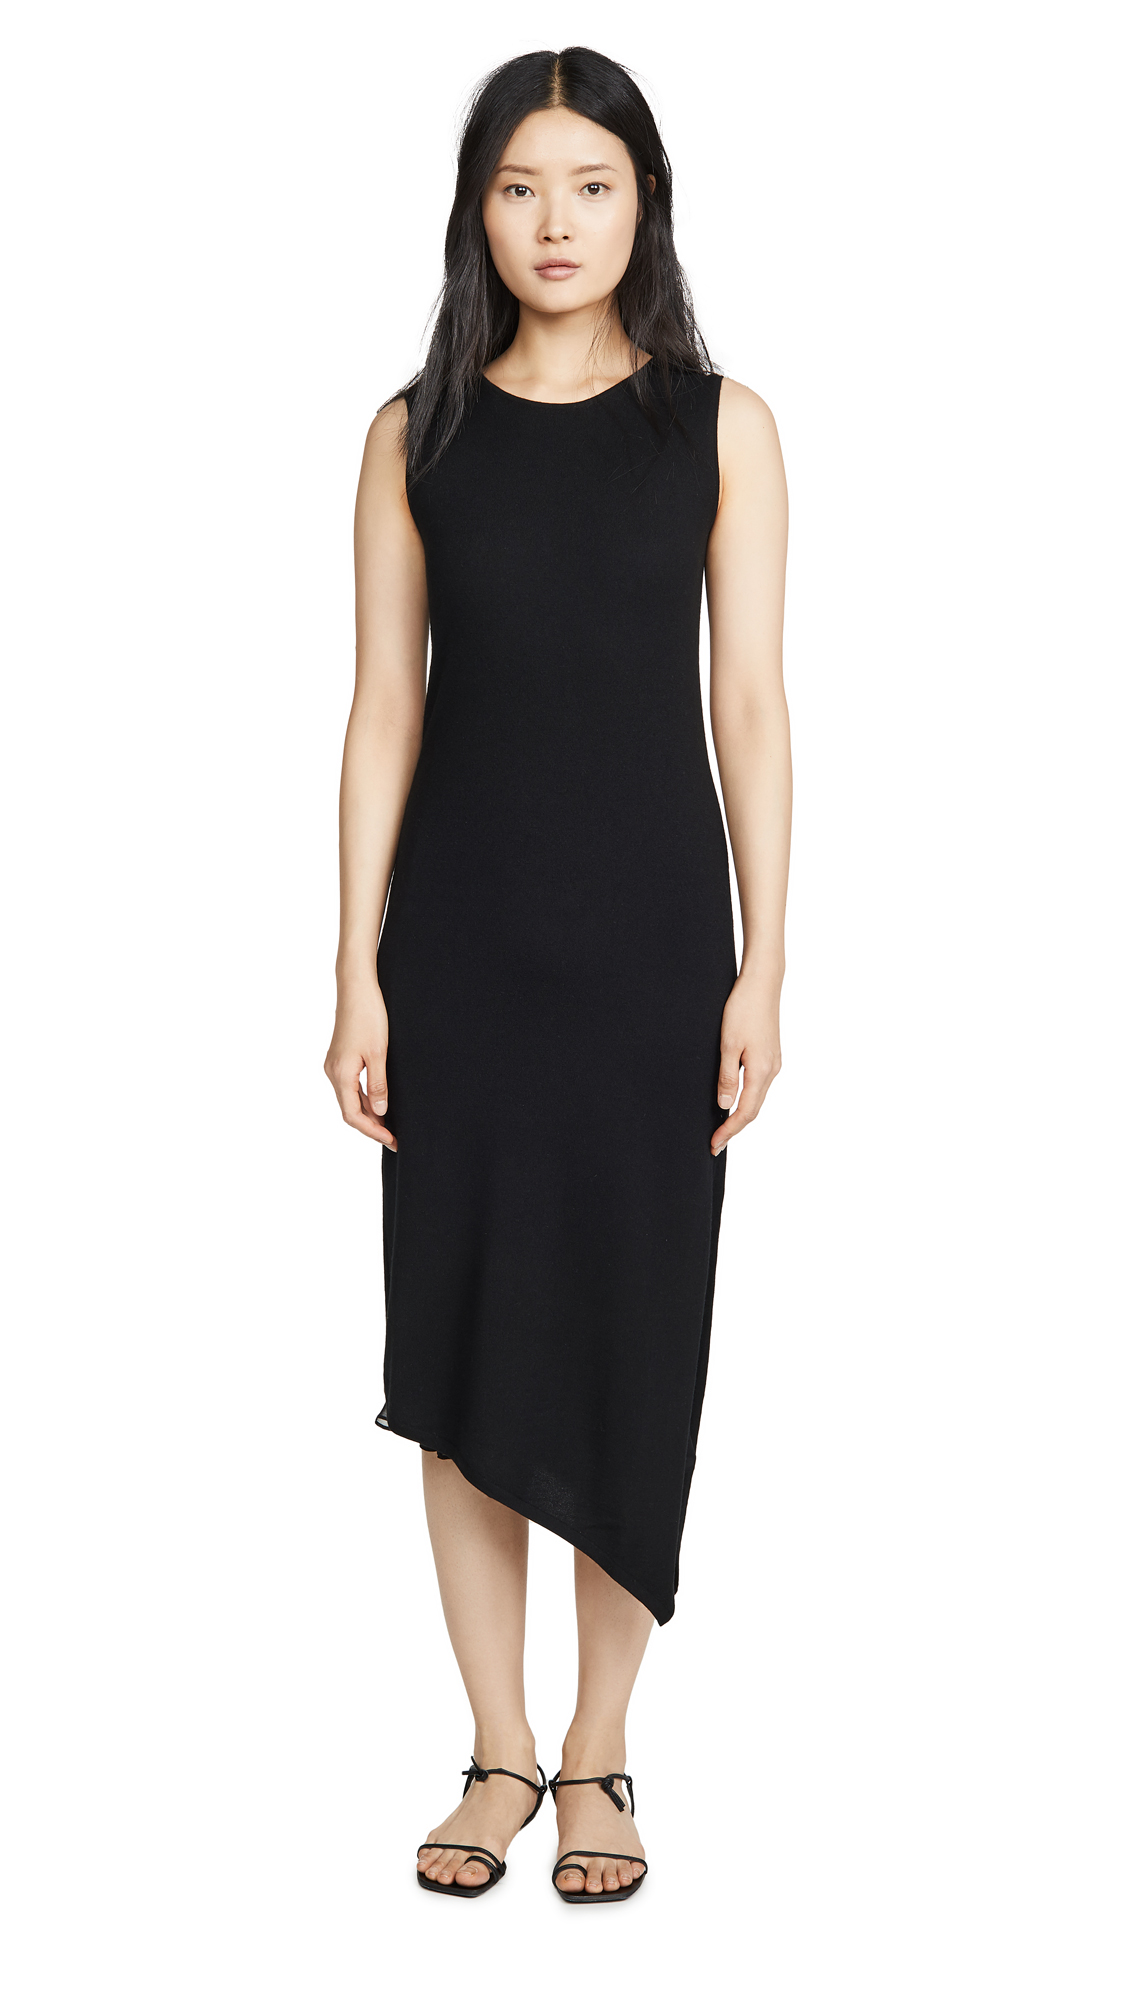 TSE Cashmere Cashmere Tank Dress - 40% Off Sale